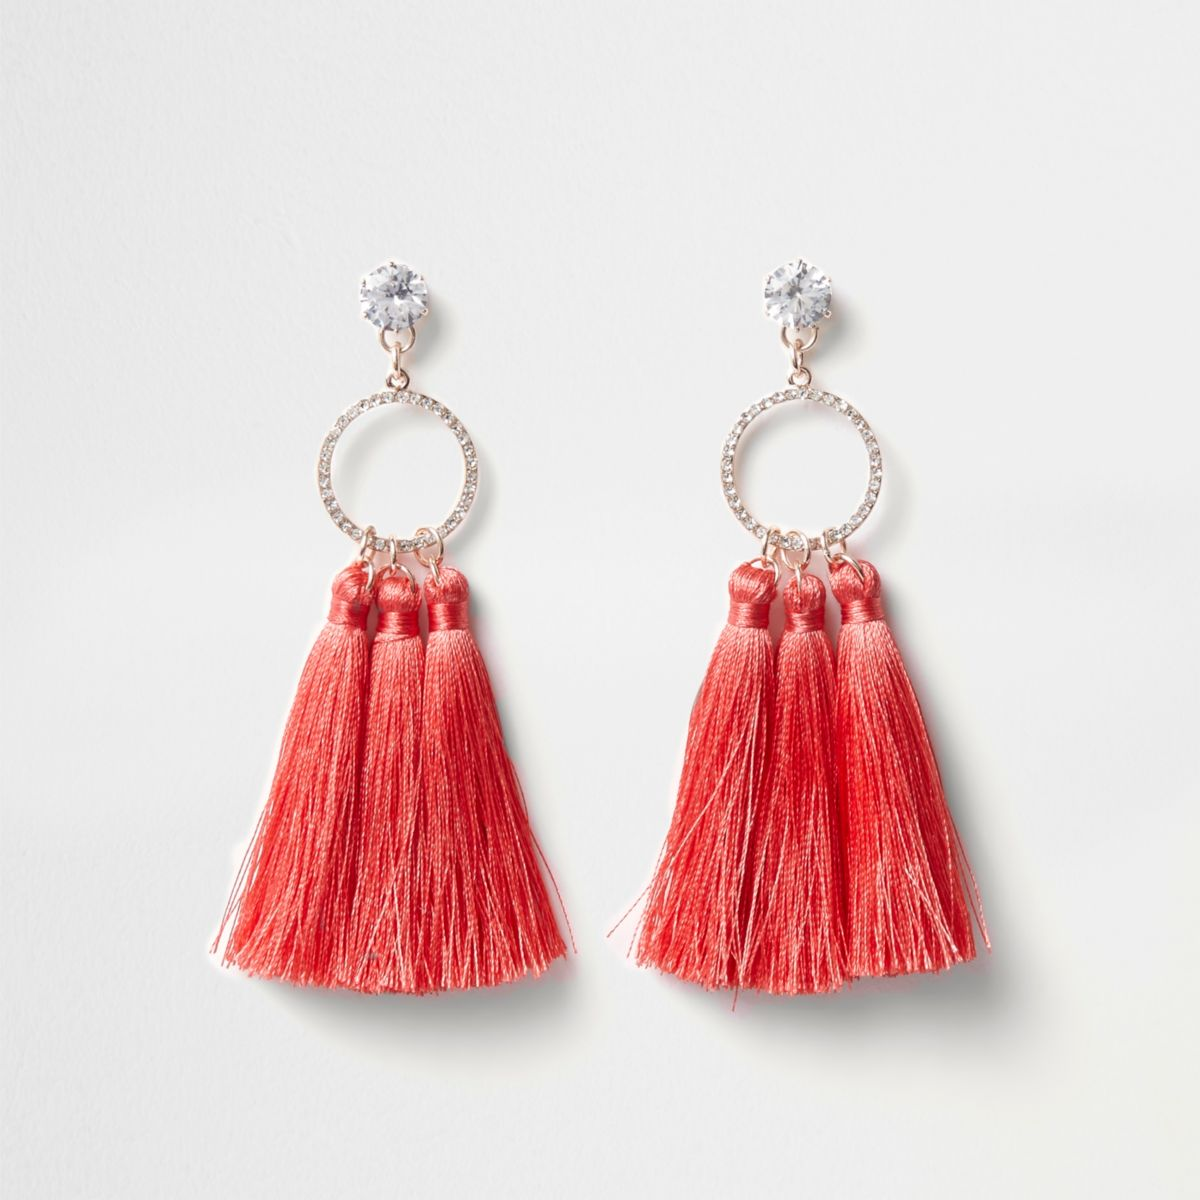 Coral pink diamante ring tassel earrings